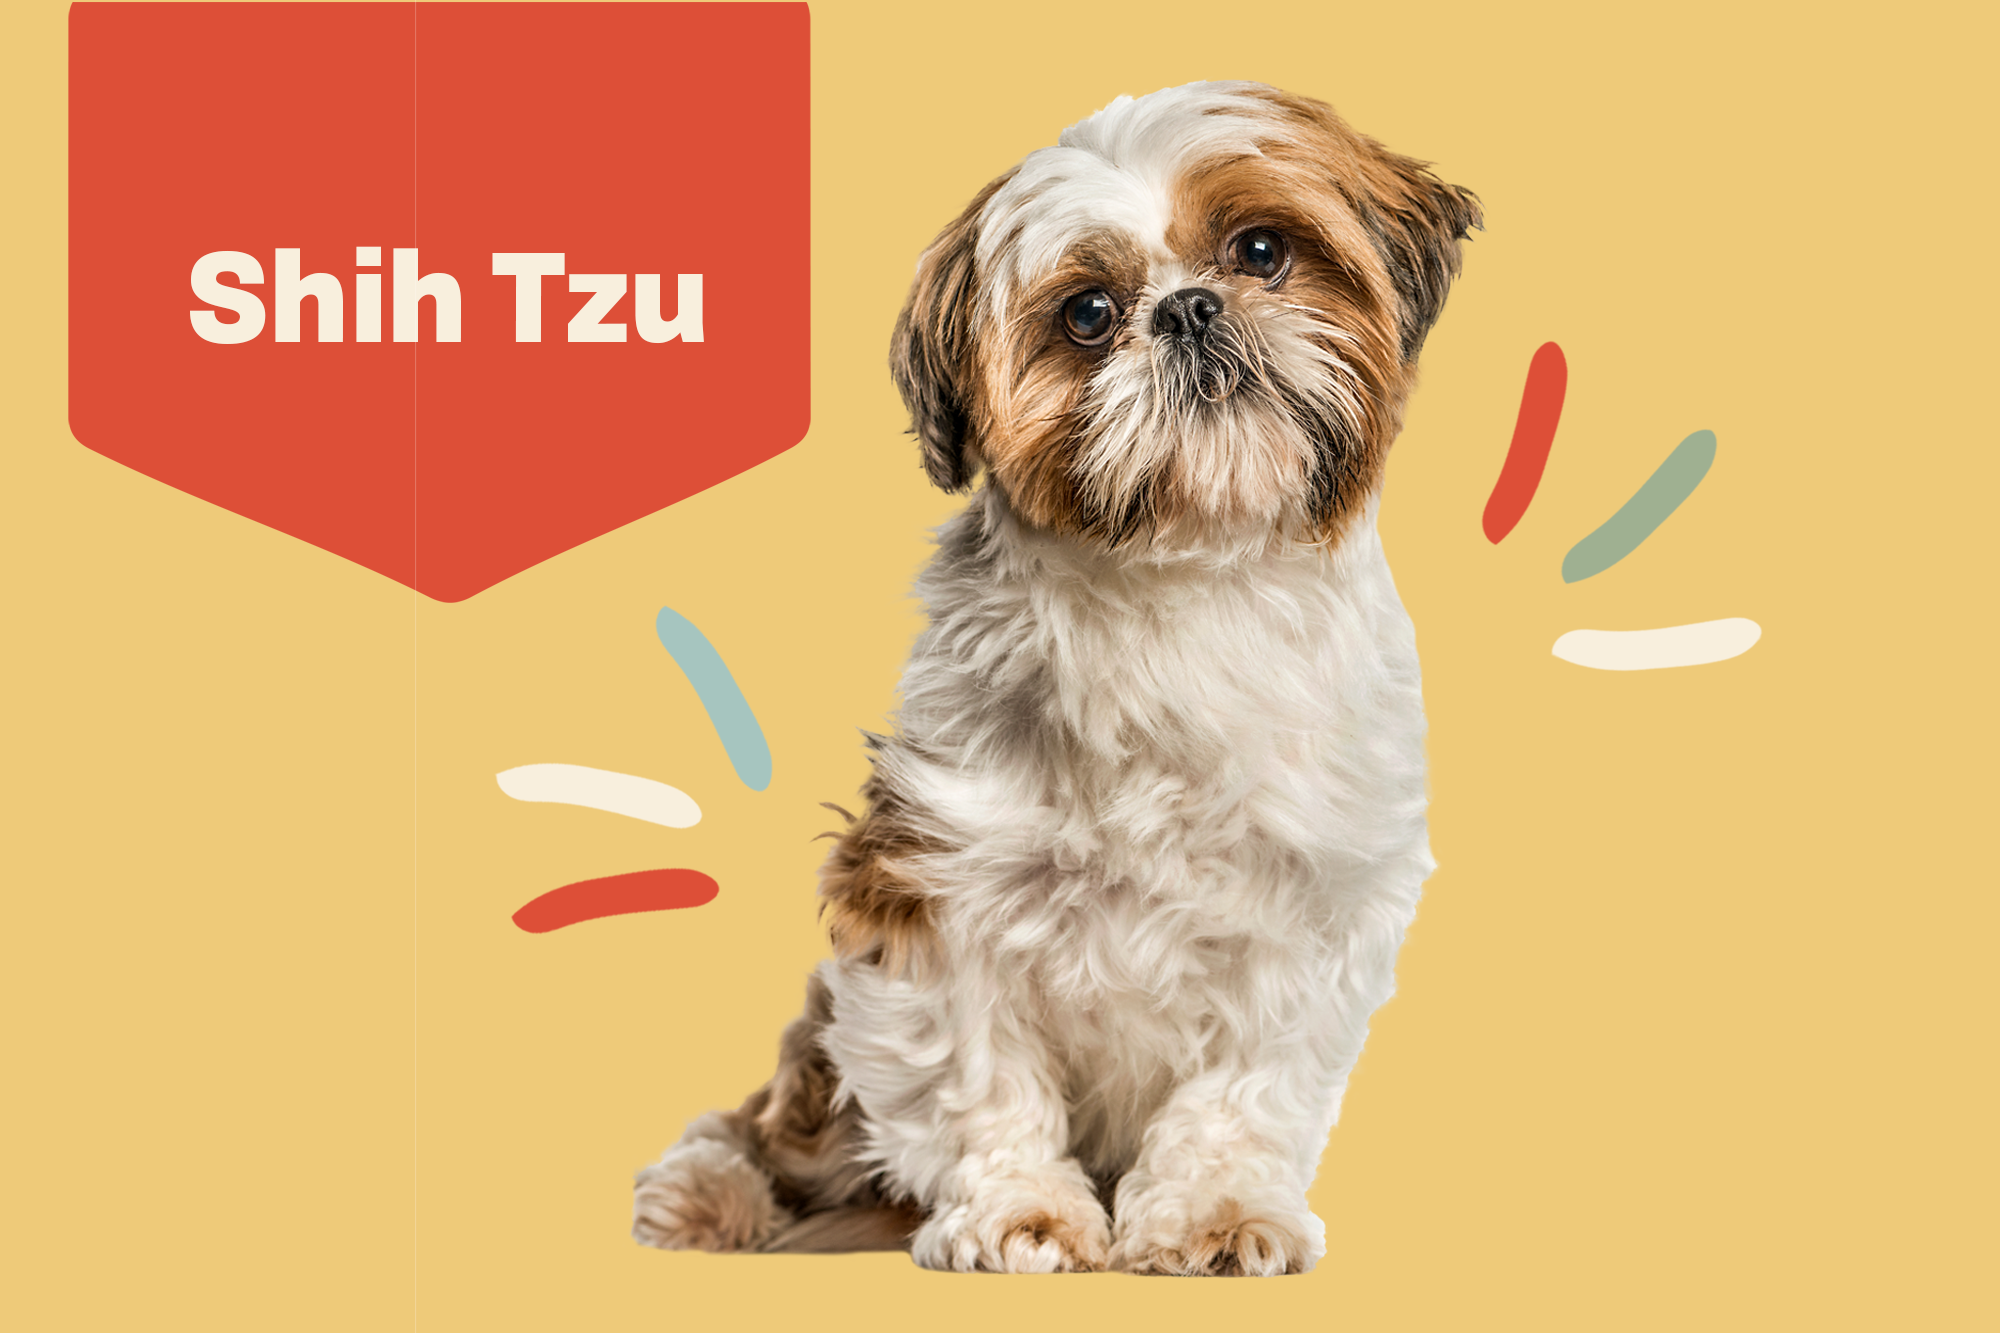 Shih Tzu Breed Photo